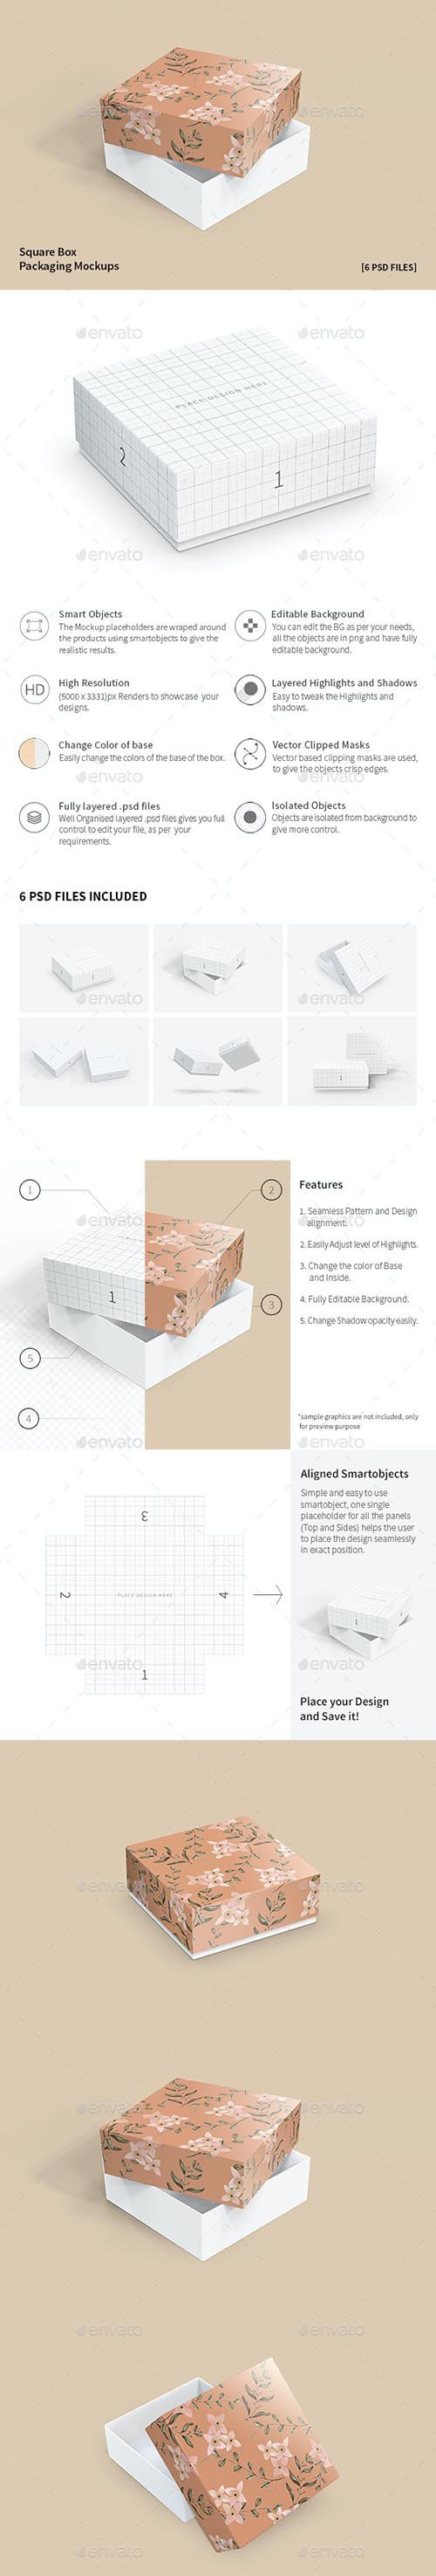 GraphicRiver Square Box Packaging Mockups 32358611.